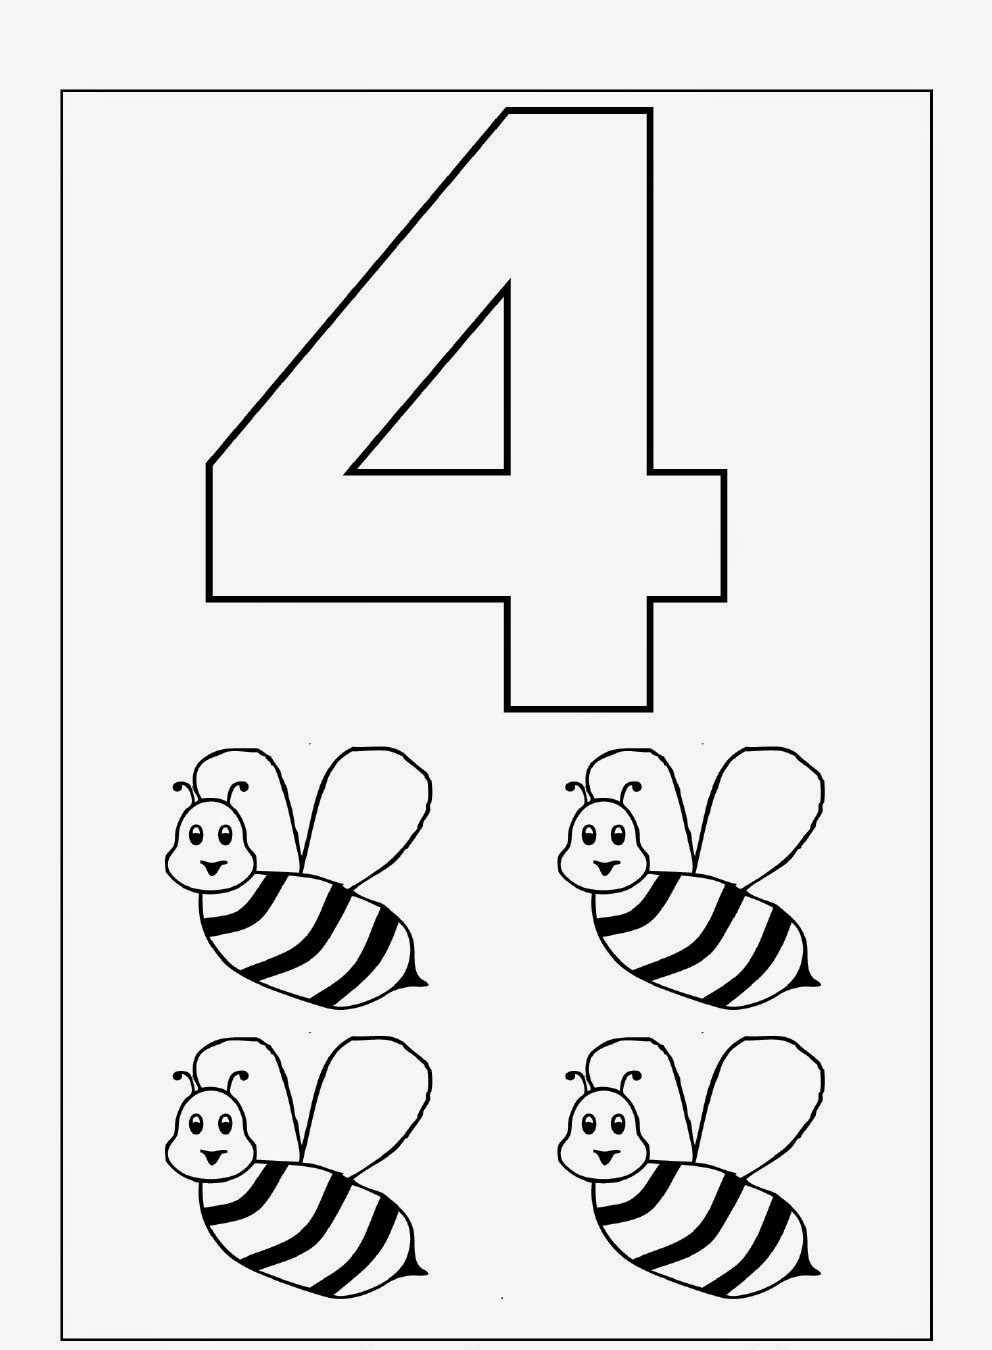 coloring pages 1 5 1 john 15 scripture type 1 5 pages coloring